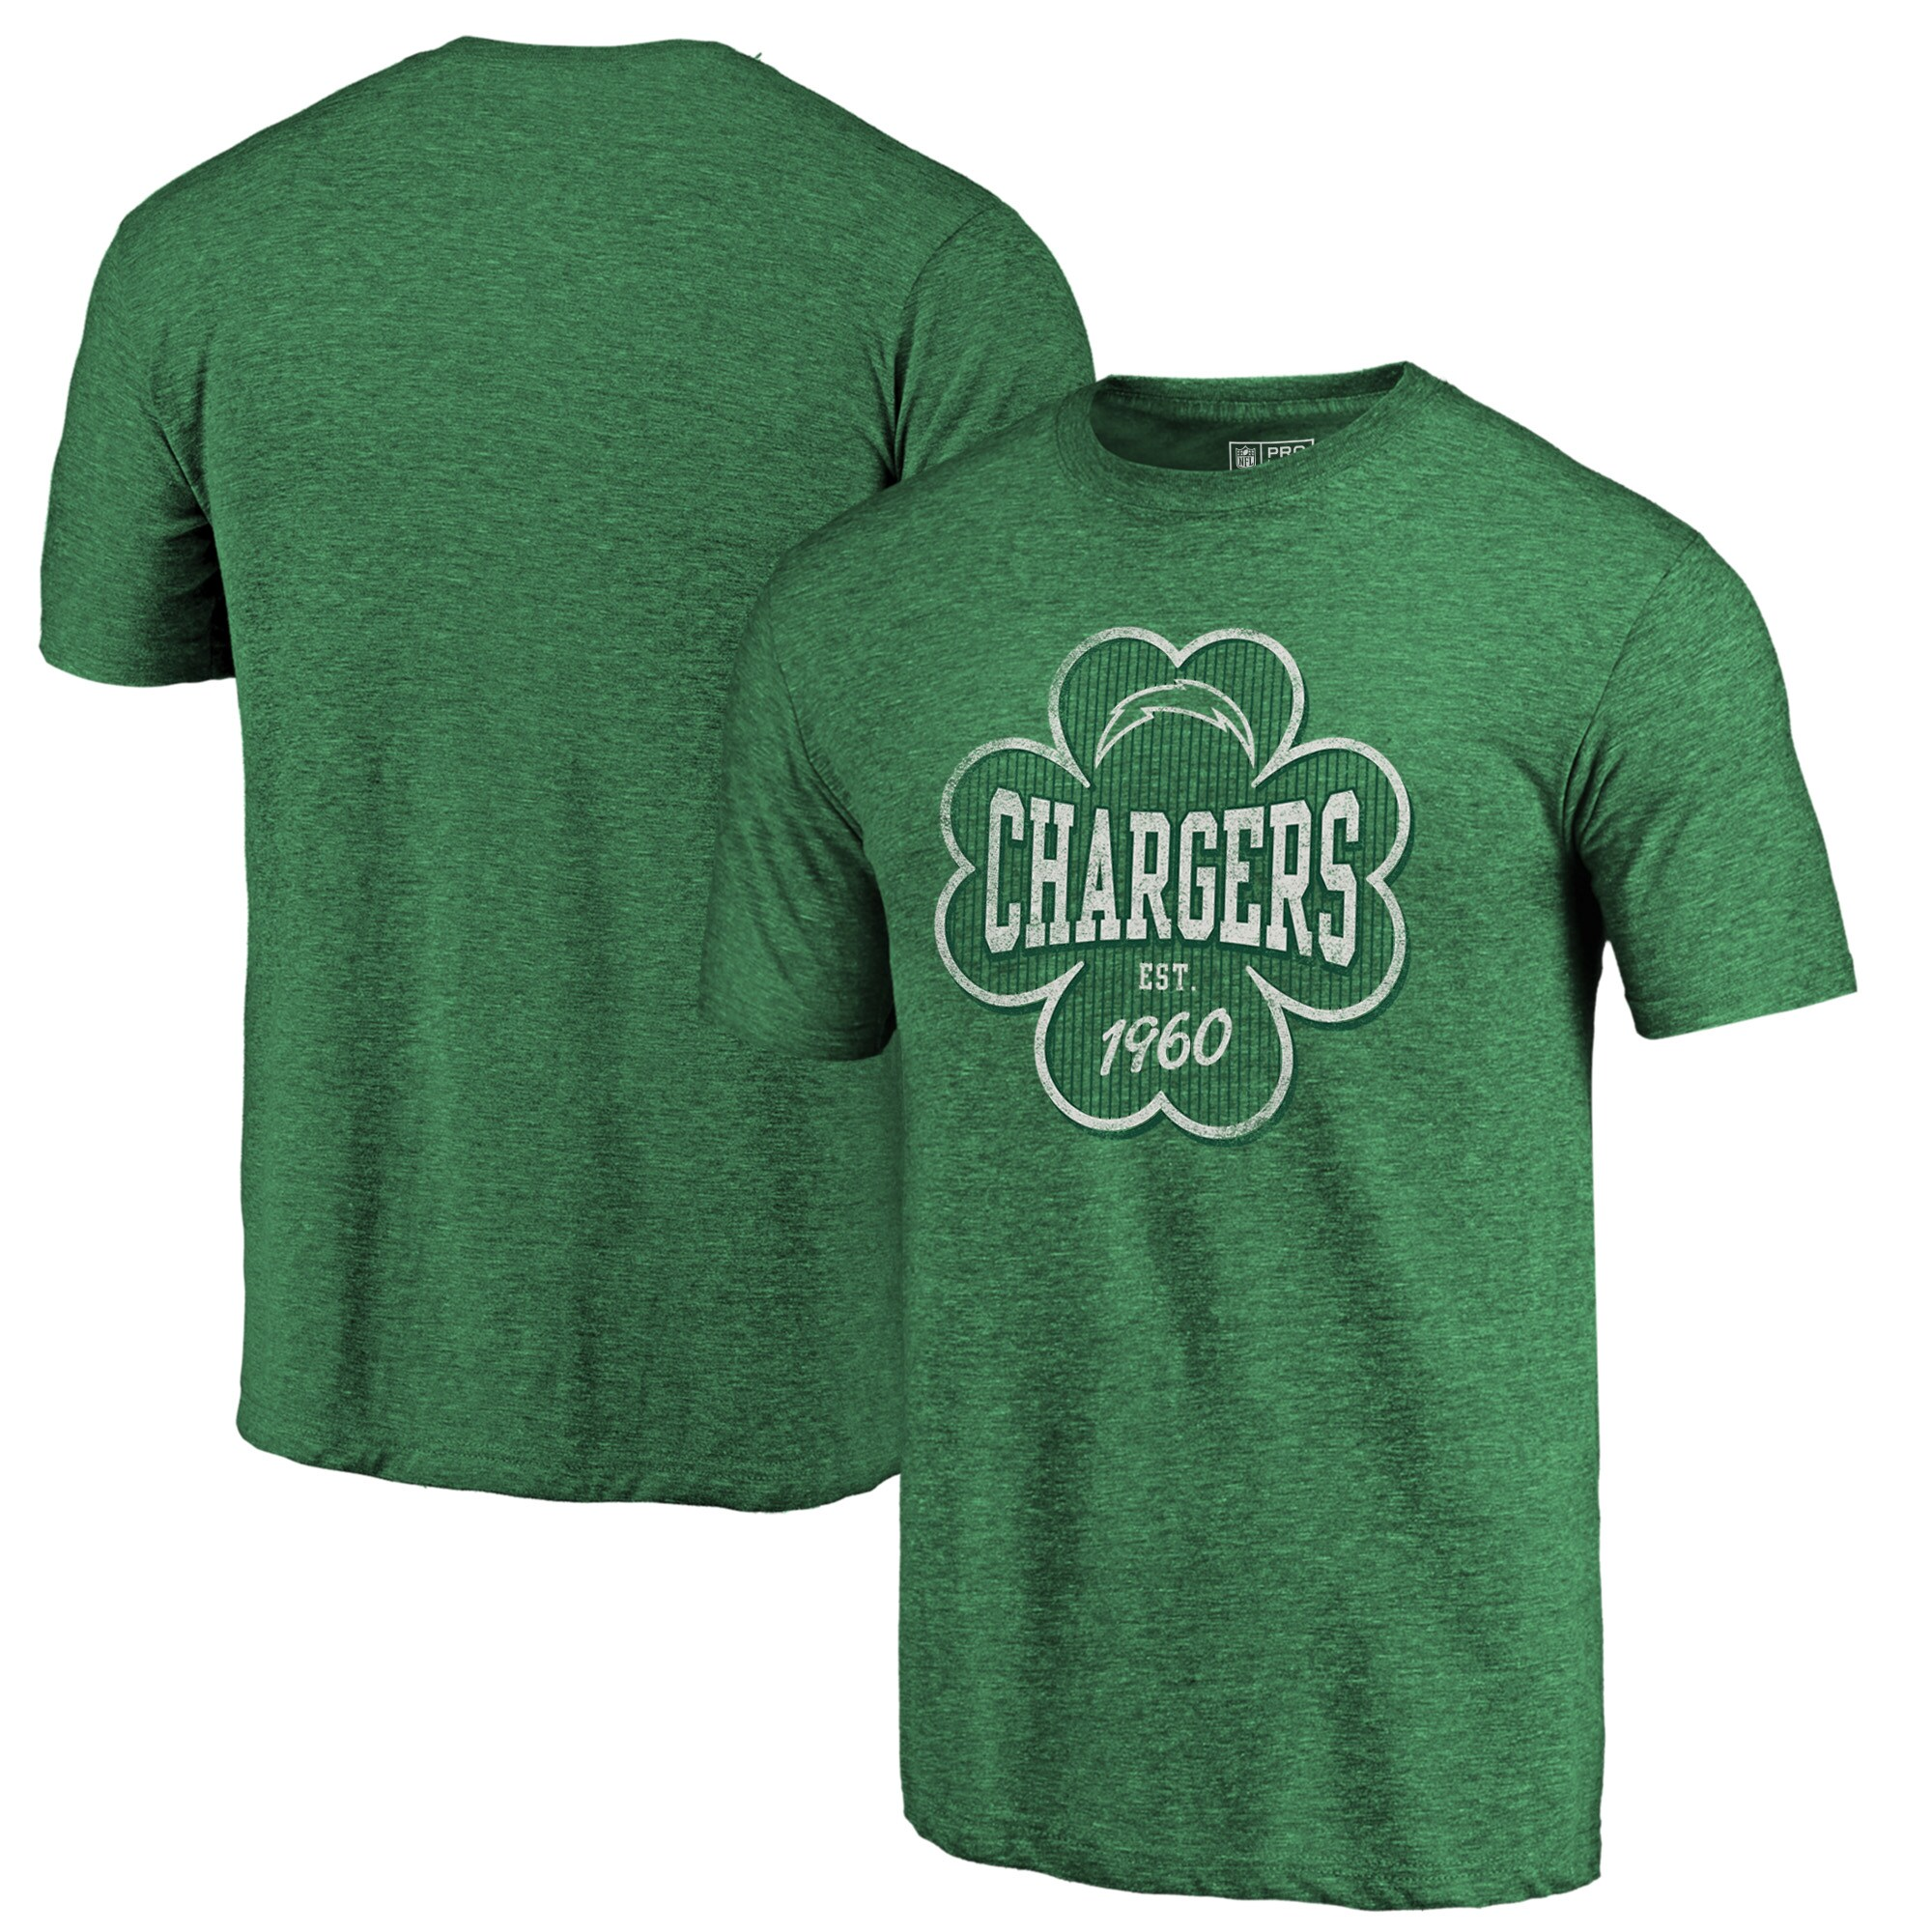 Los Angeles Chargers NFL Pro Line by Fanatics Branded Emerald Isle Tri-Blend T-Shirt - Kelly Green